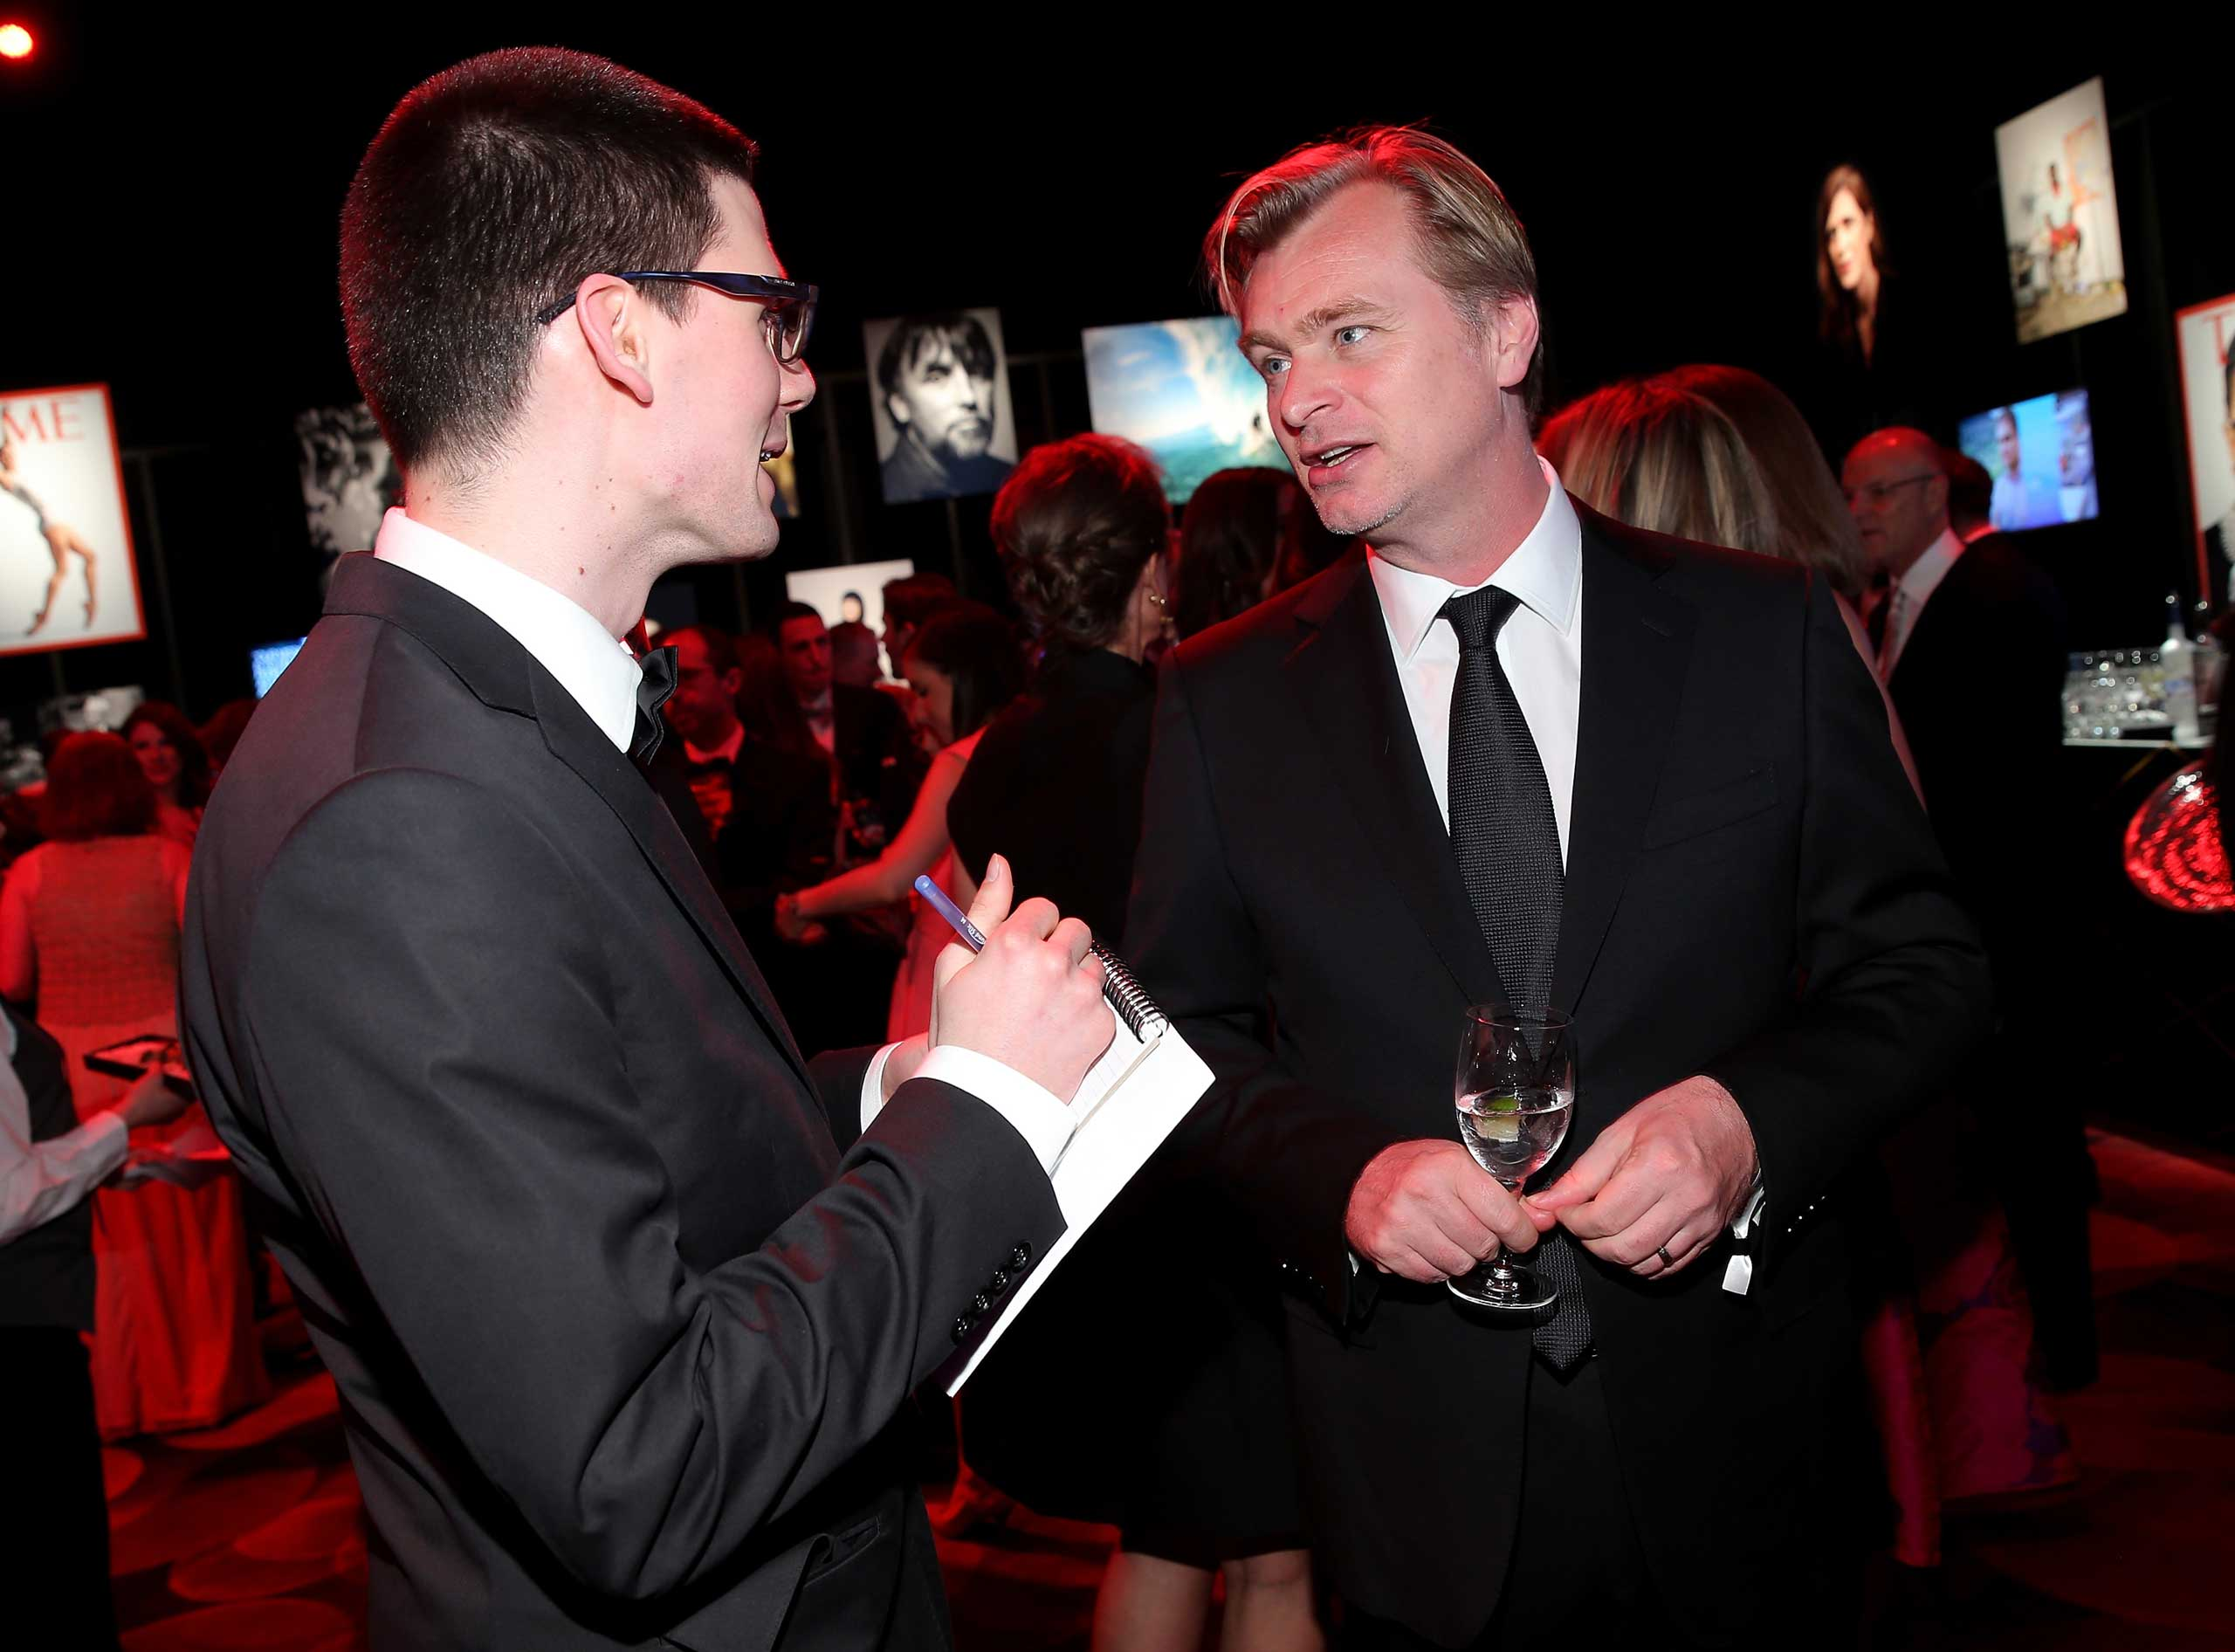 Christopher Nolan talks to TIME reporter Nolan Feeney during the TIME 100 gala at Jazz at Lincoln Center in New York City on April 21, 2015.